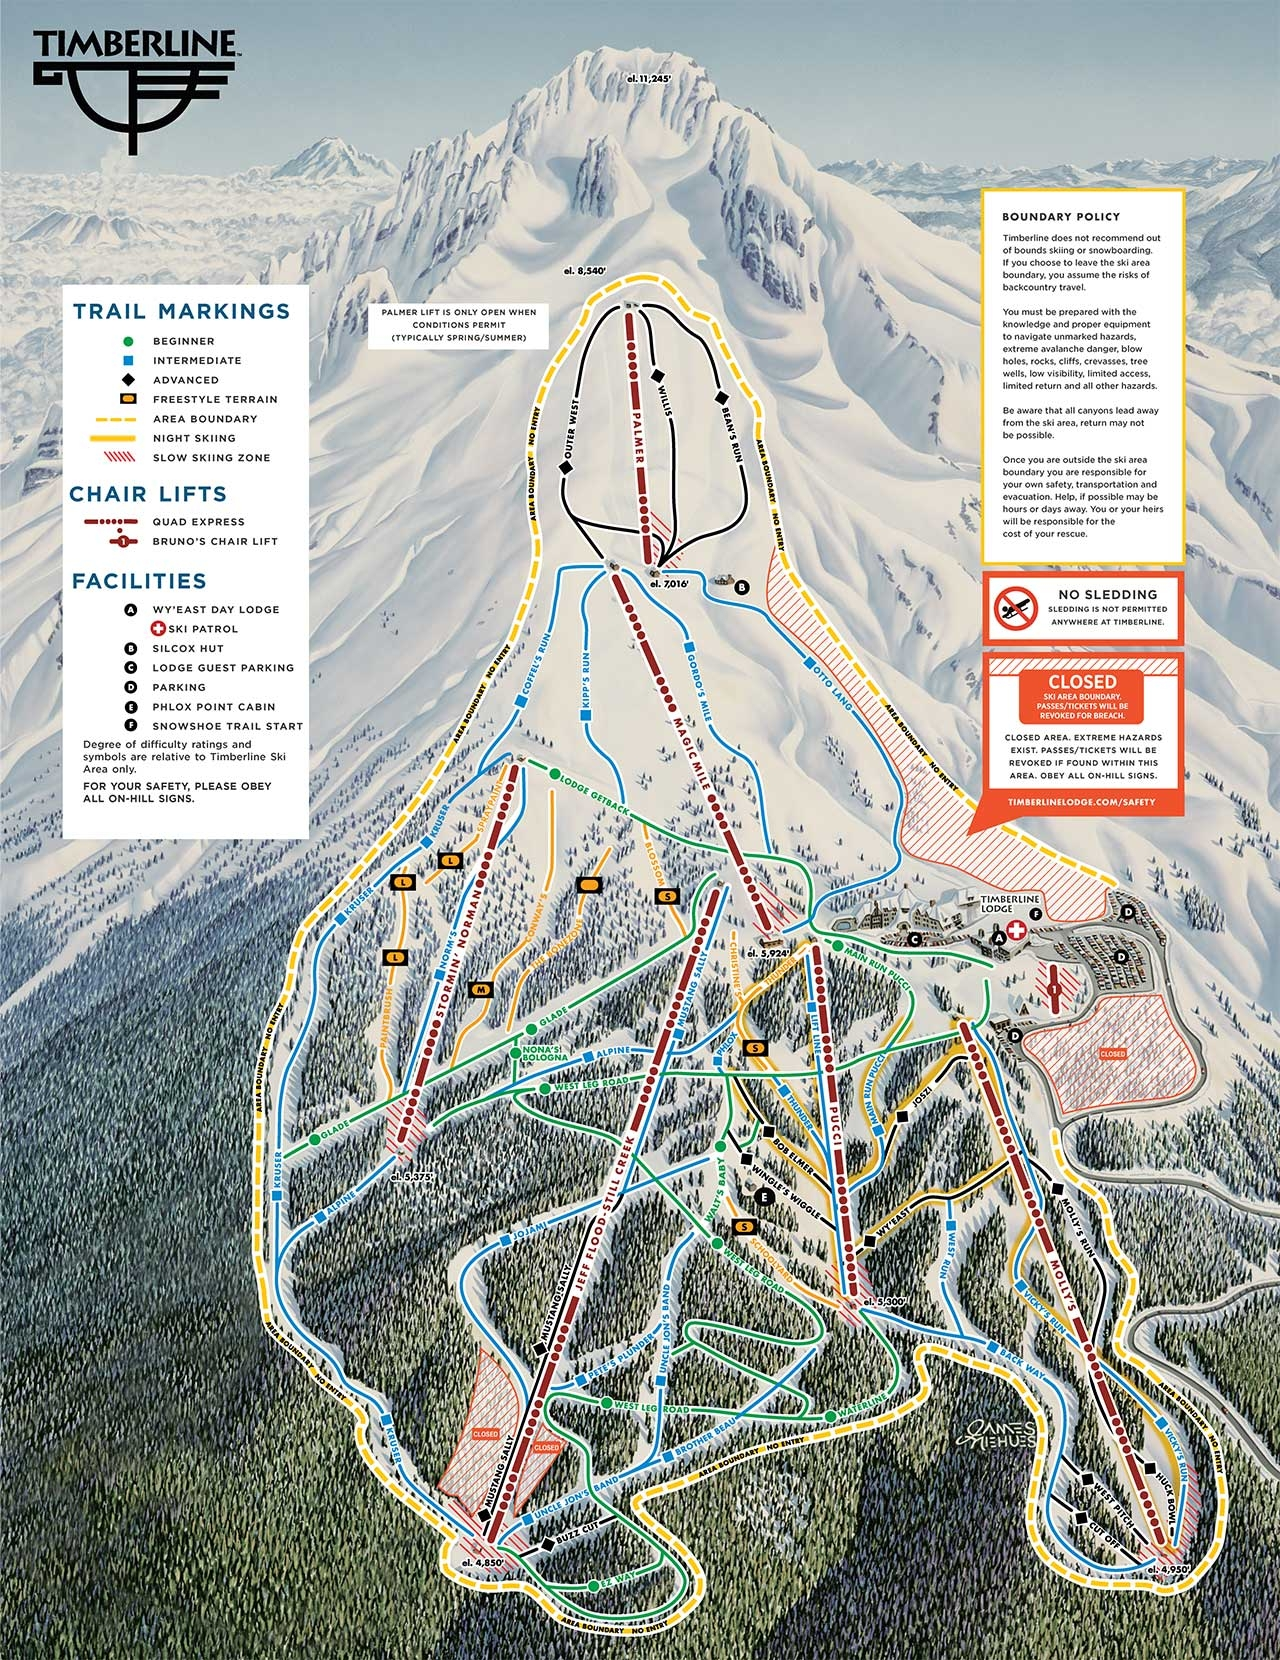 TIMBERLINE WINTER TRAIL MAP